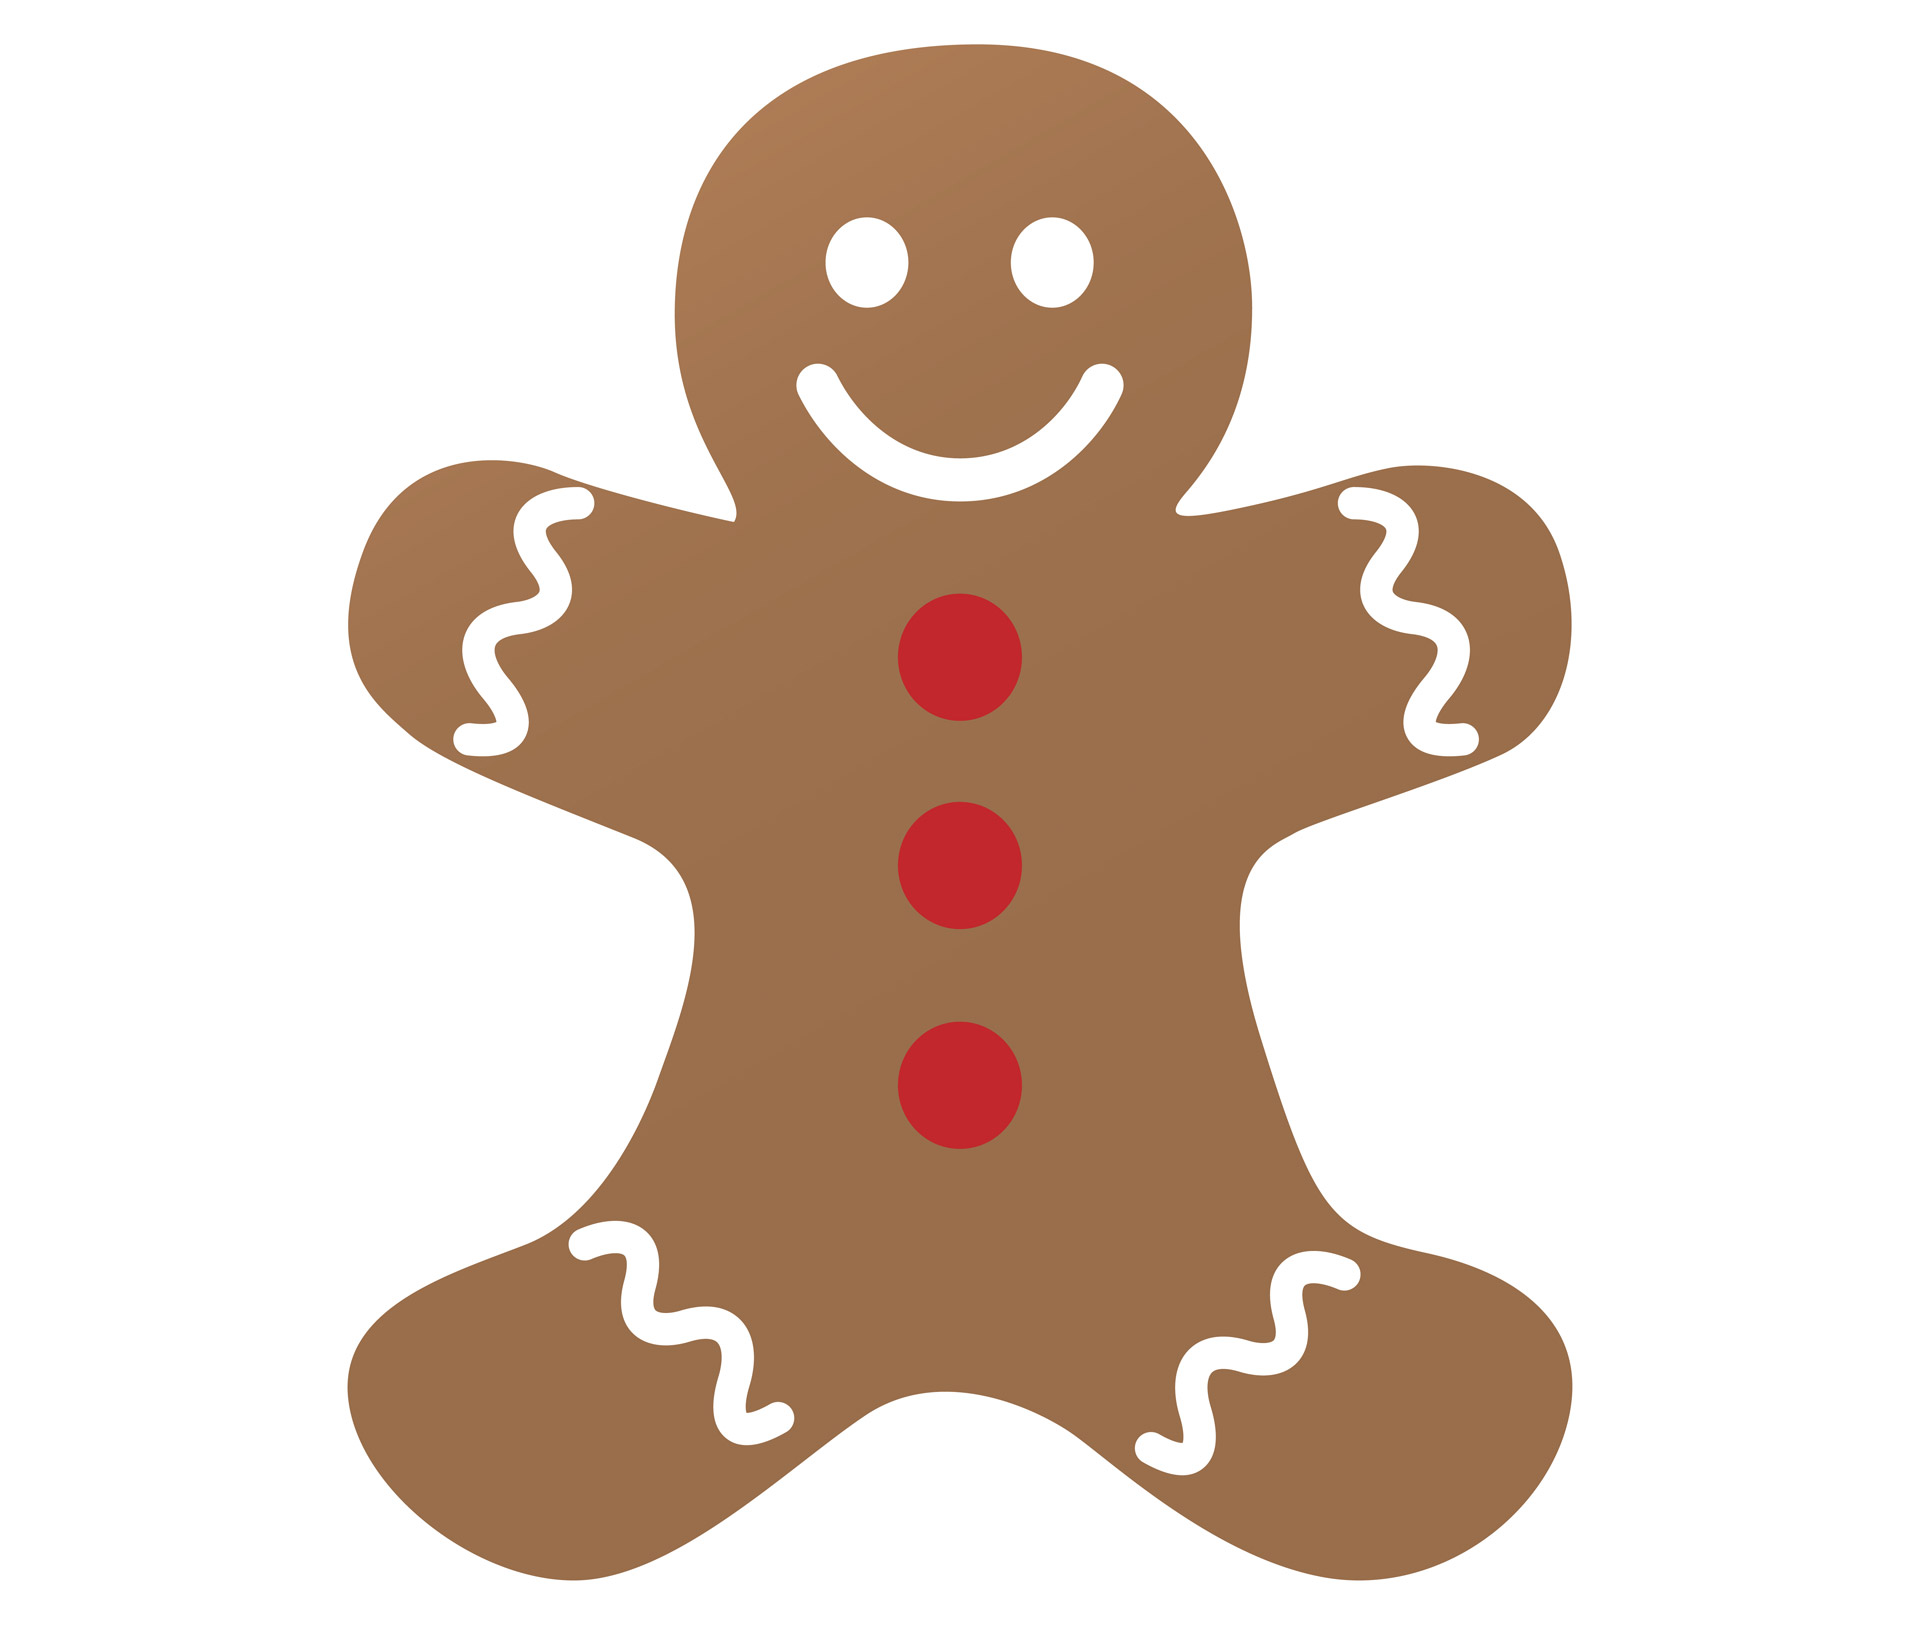 Gingerbread Man Outline